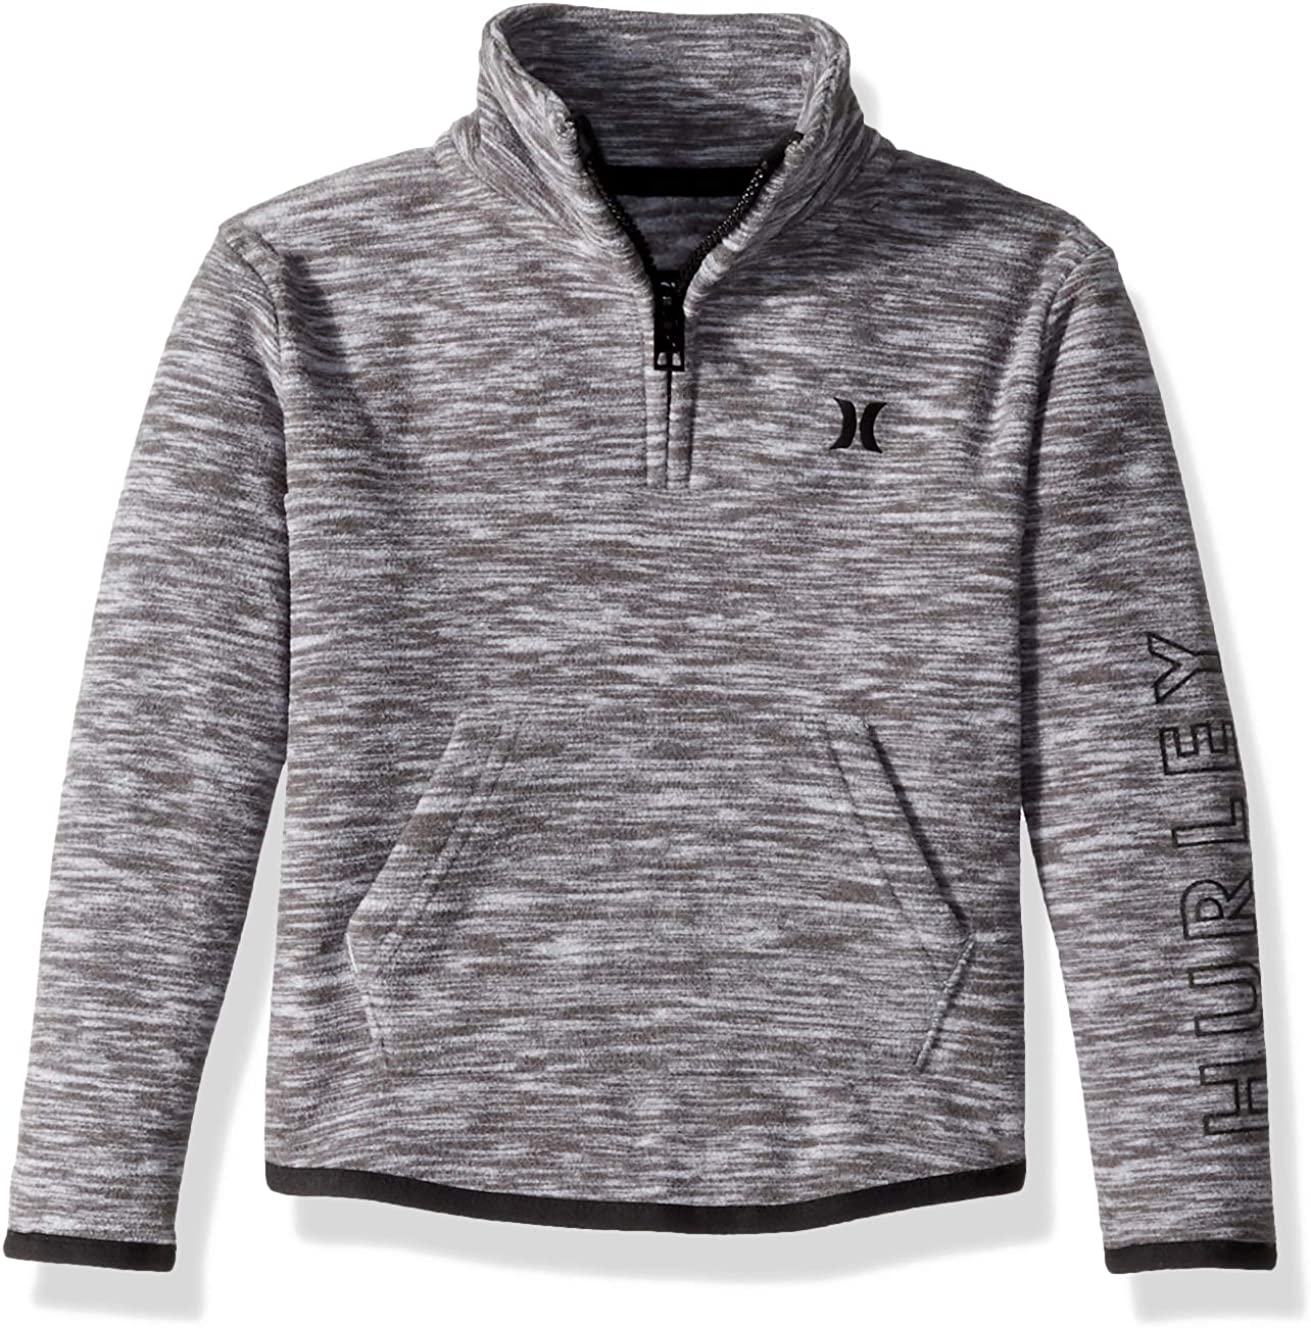 Hurley It All stores are sold is very popular Boys' Fleece Pull Over